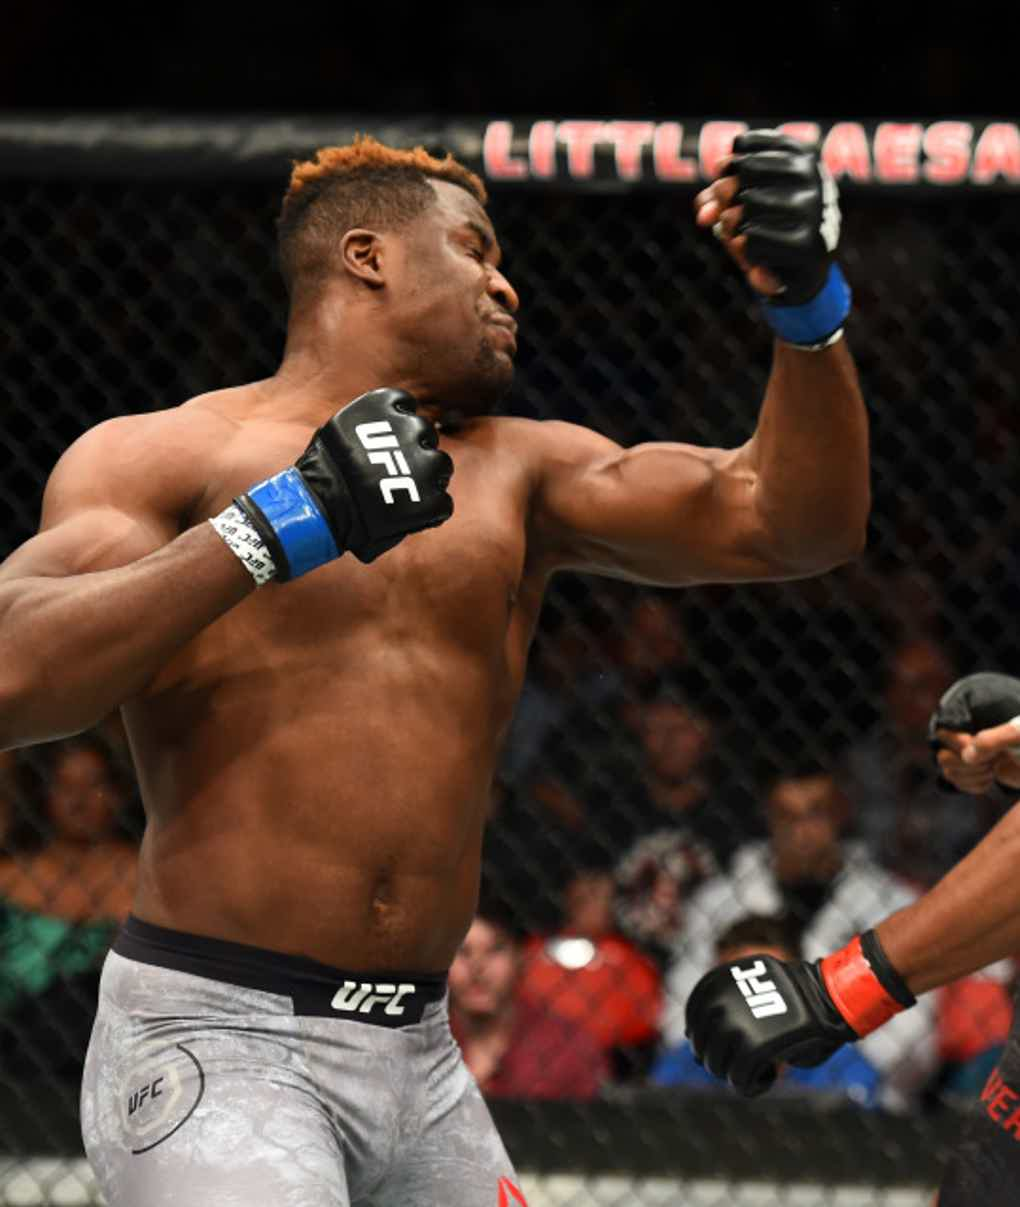 Ufc online betting canada guide to betting on horses